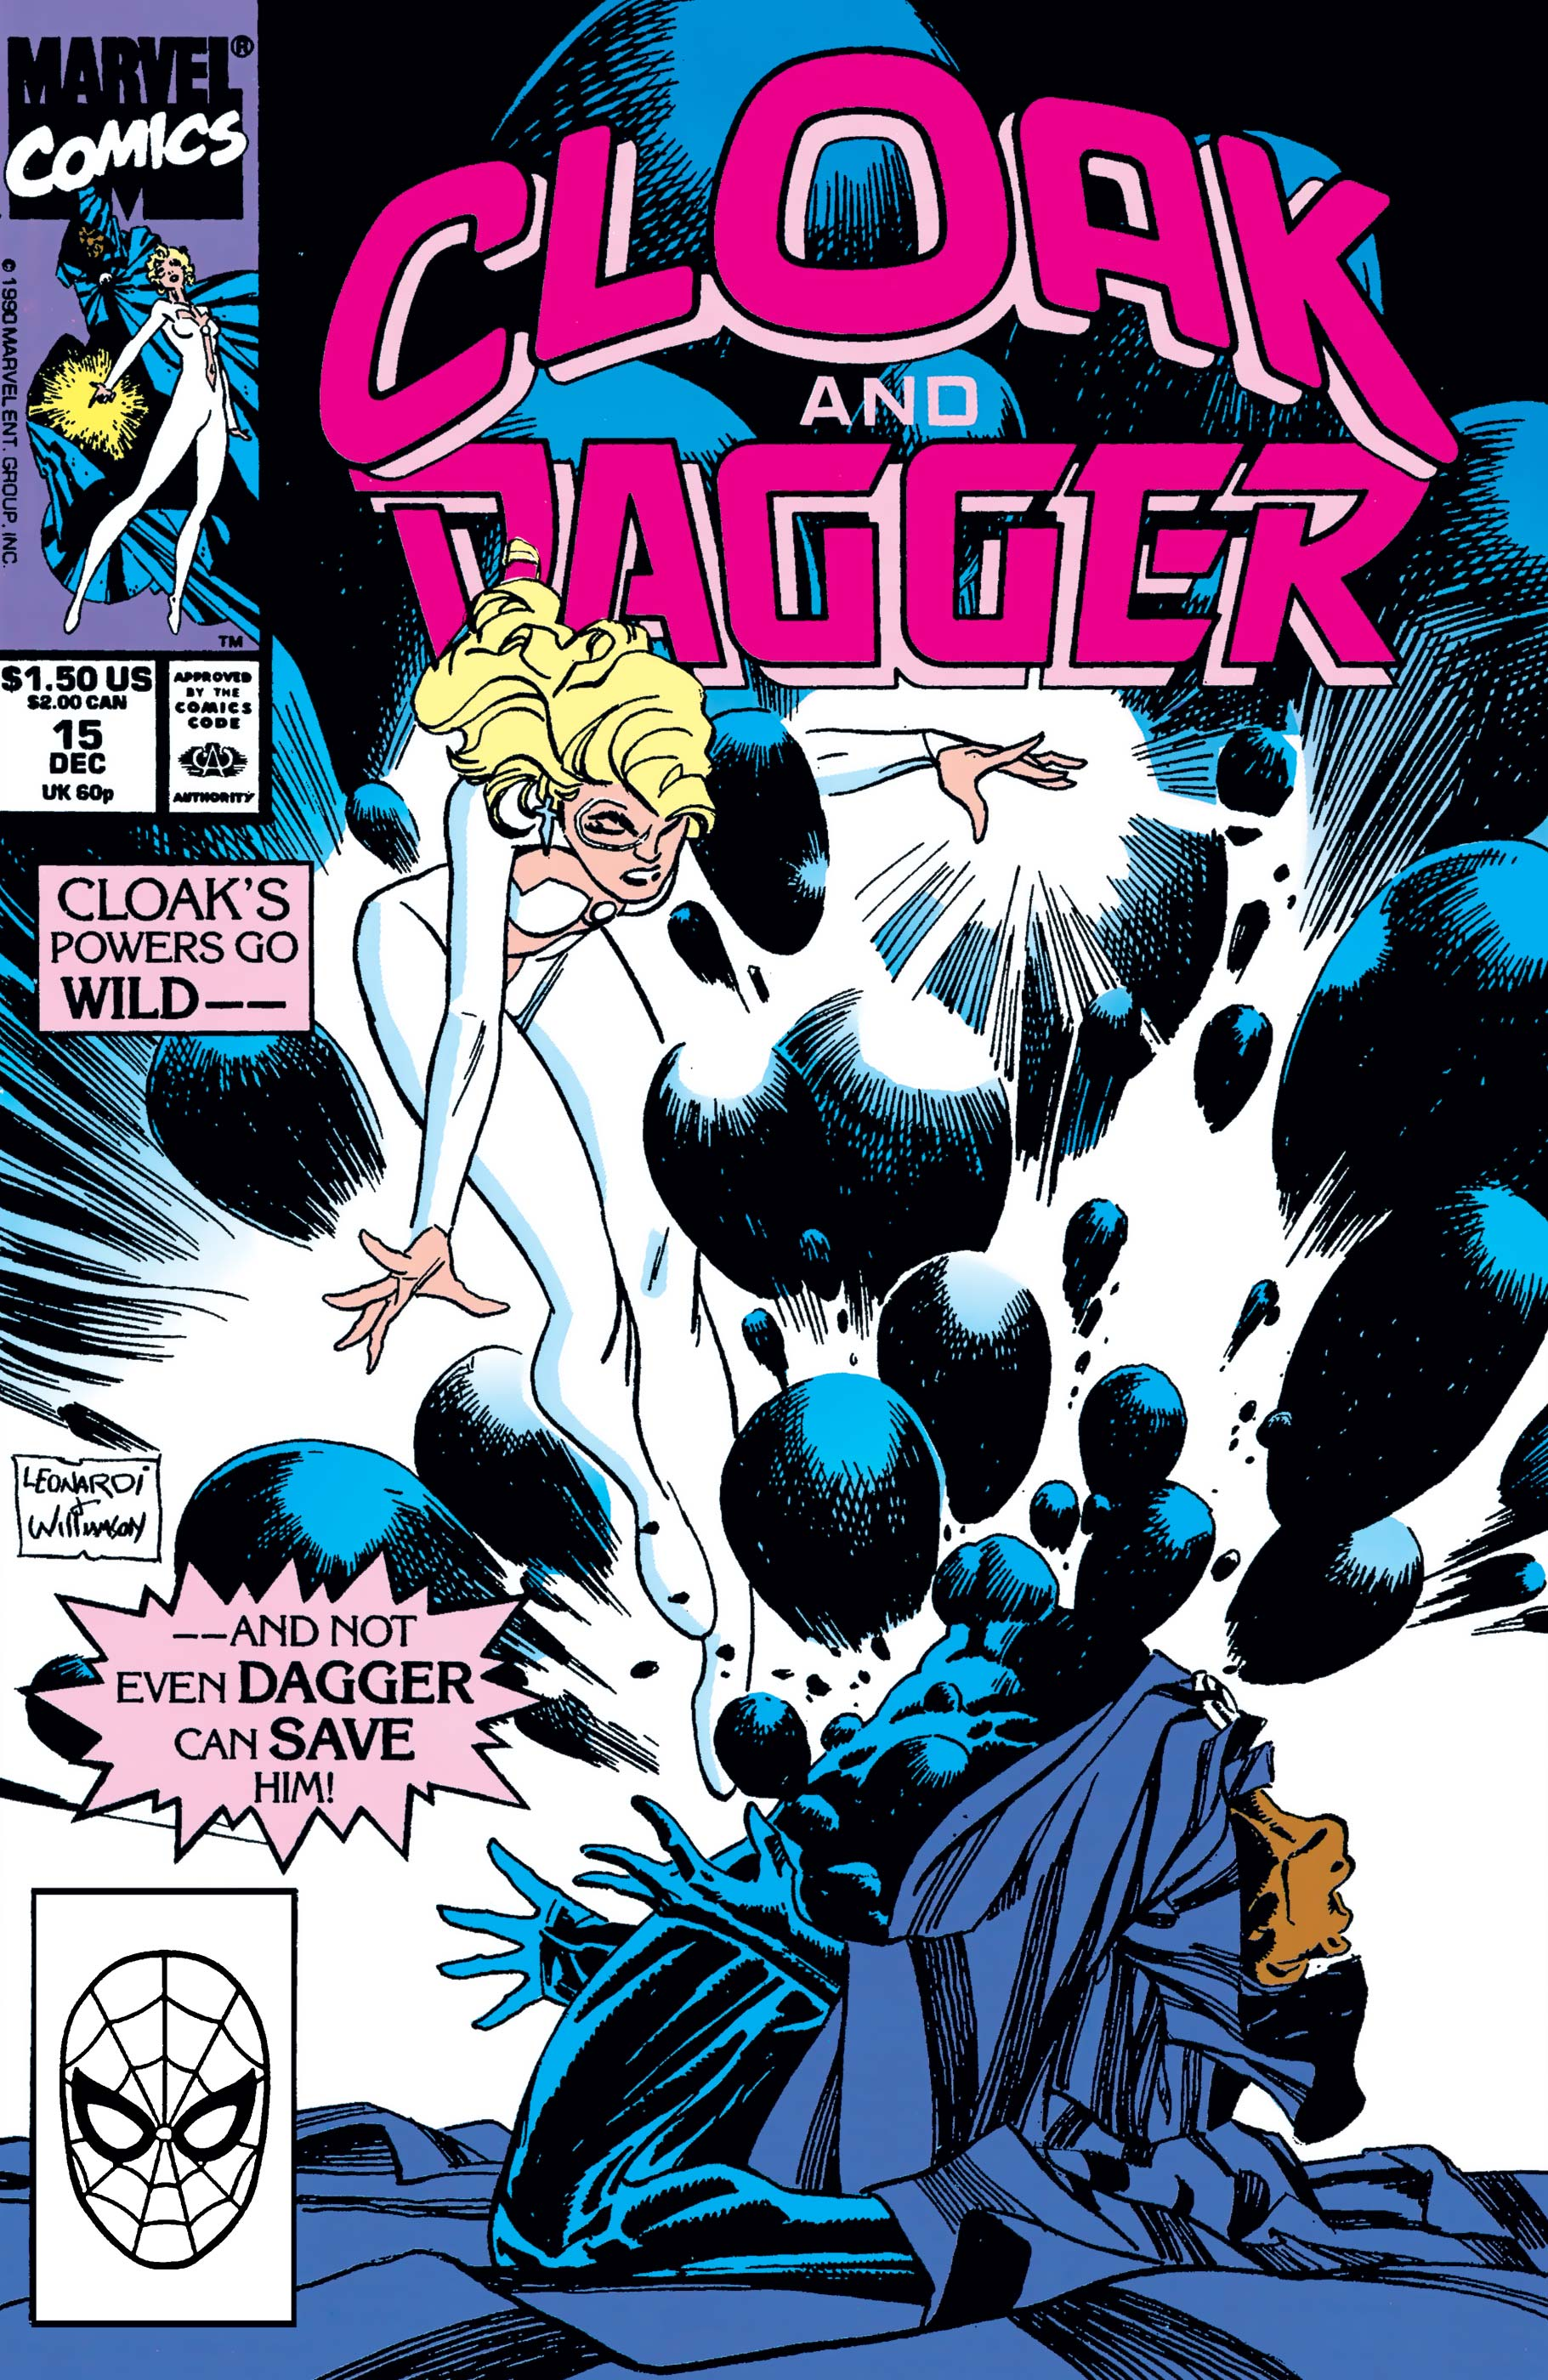 The Mutant Misadventures of Cloak and Dagger (1988) #15